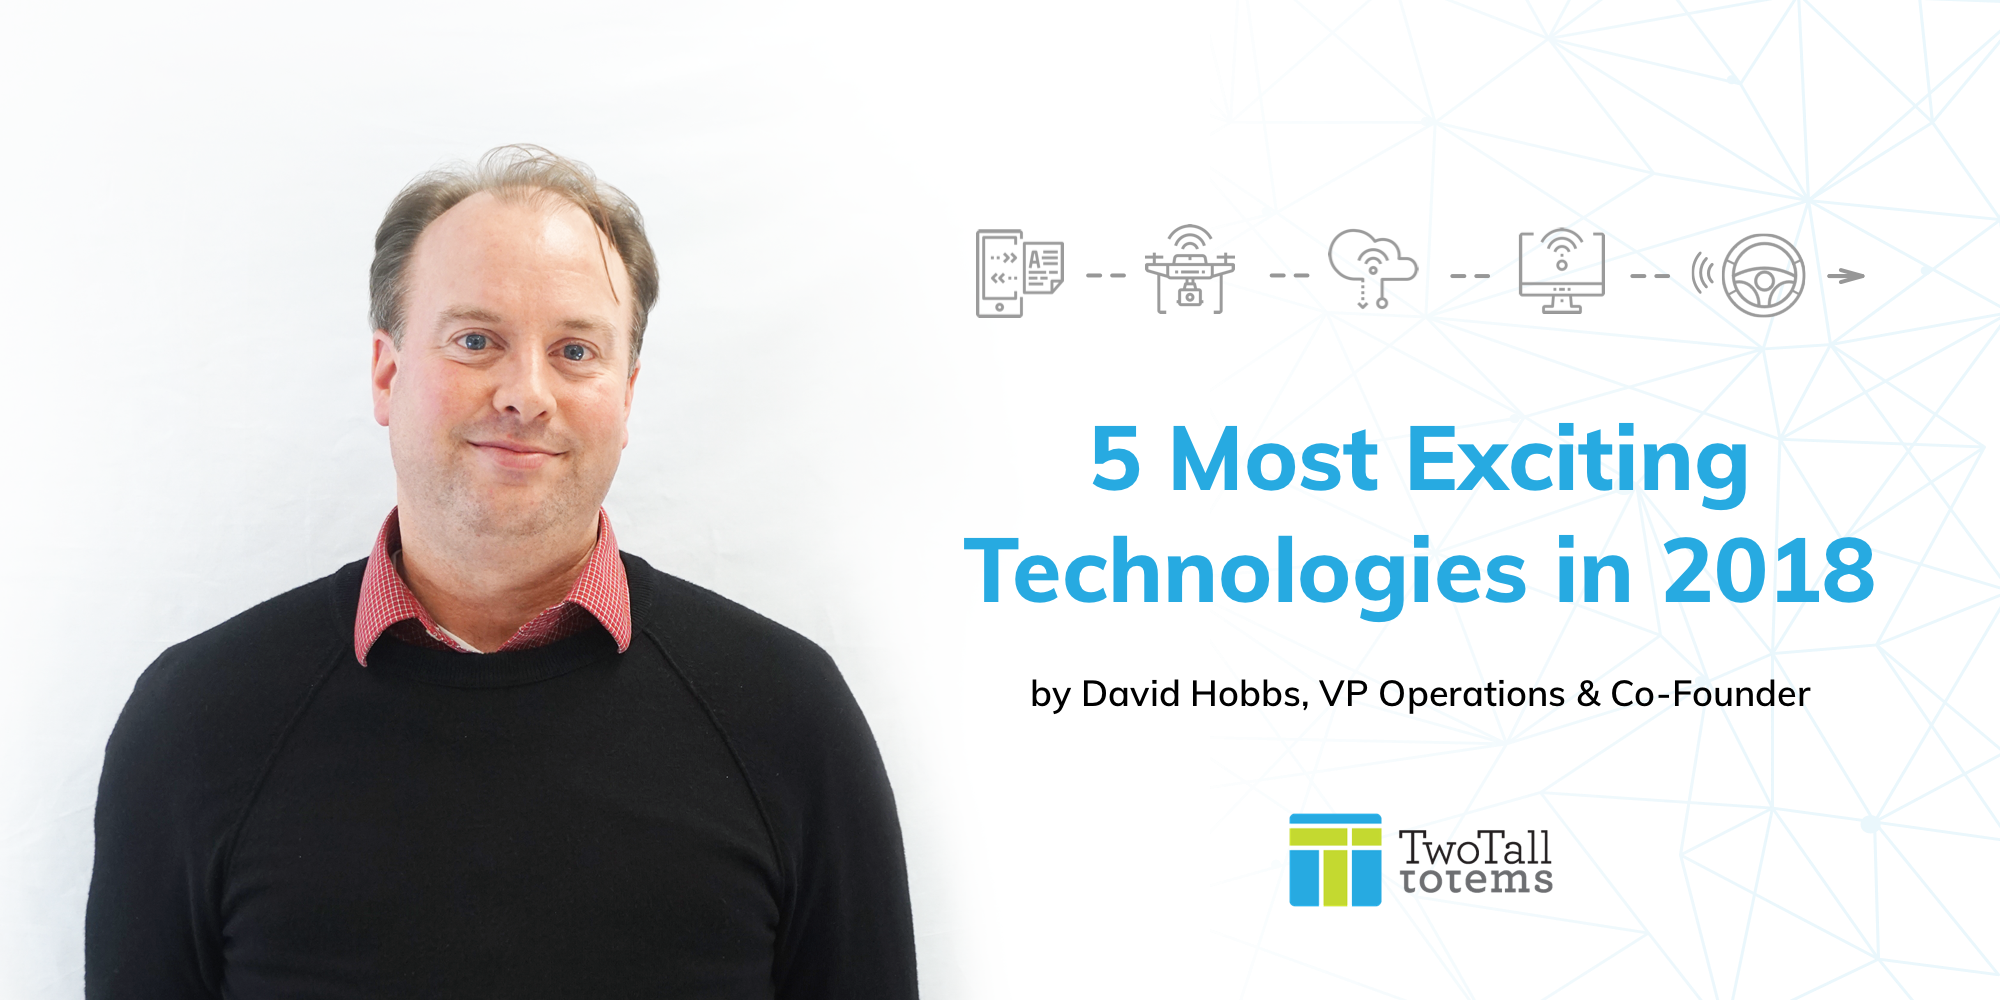 5 most exciting technologies in 2018